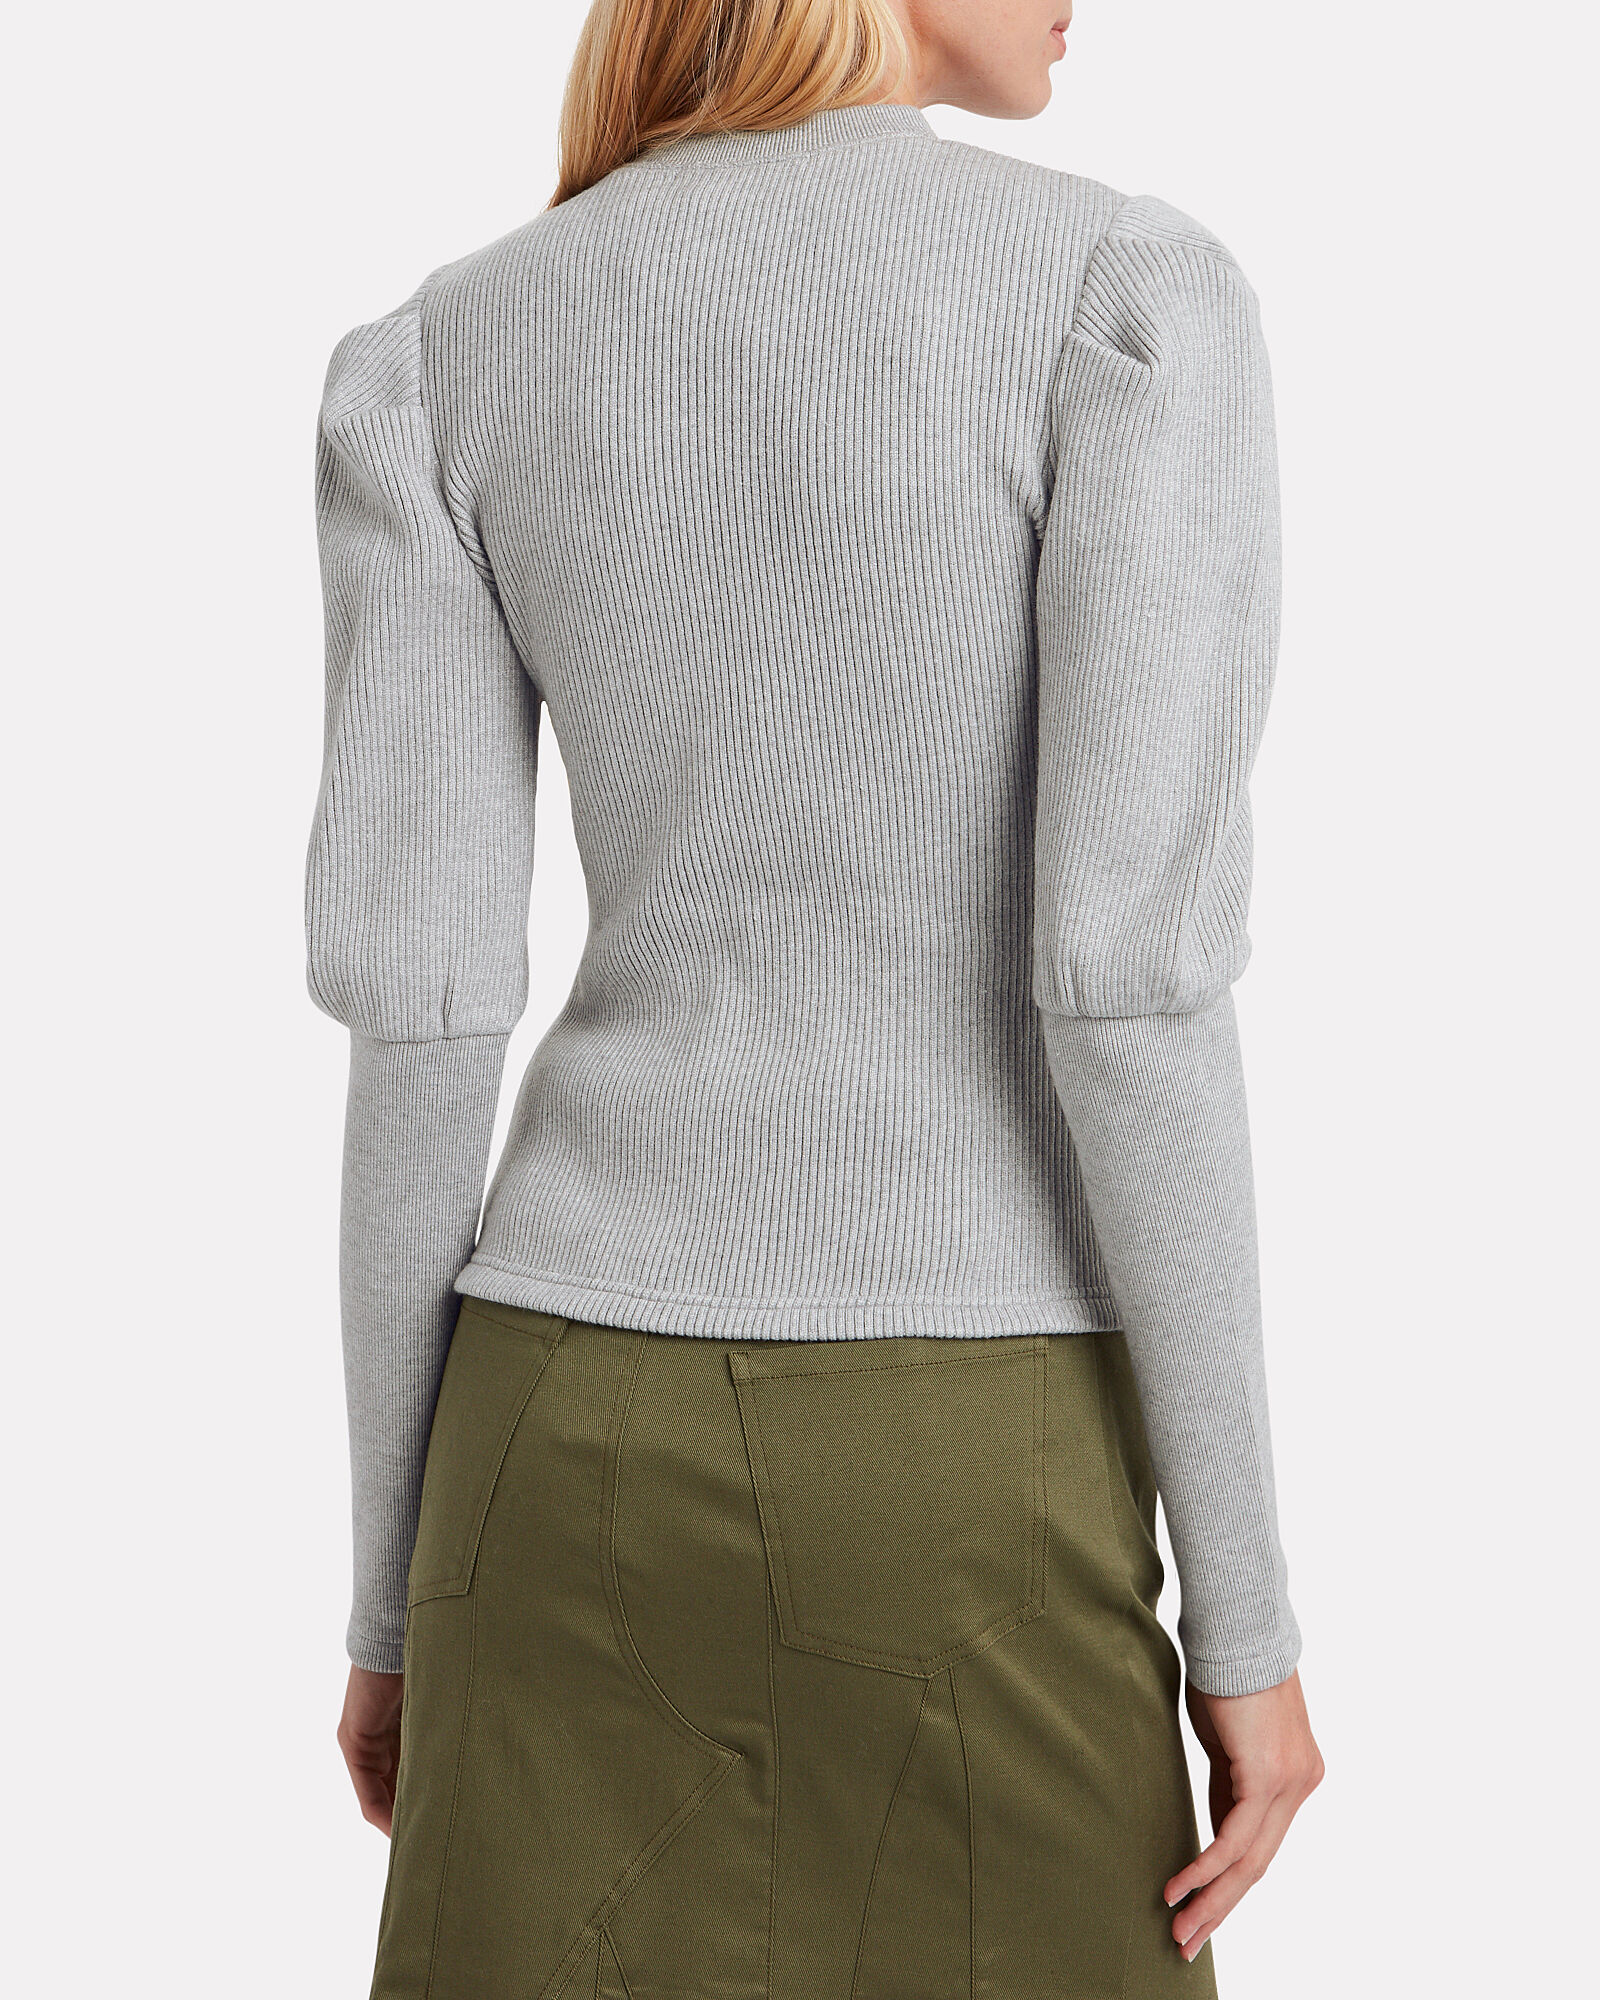 Directional Bishop Sleeve Sweater, GREY, hi-res